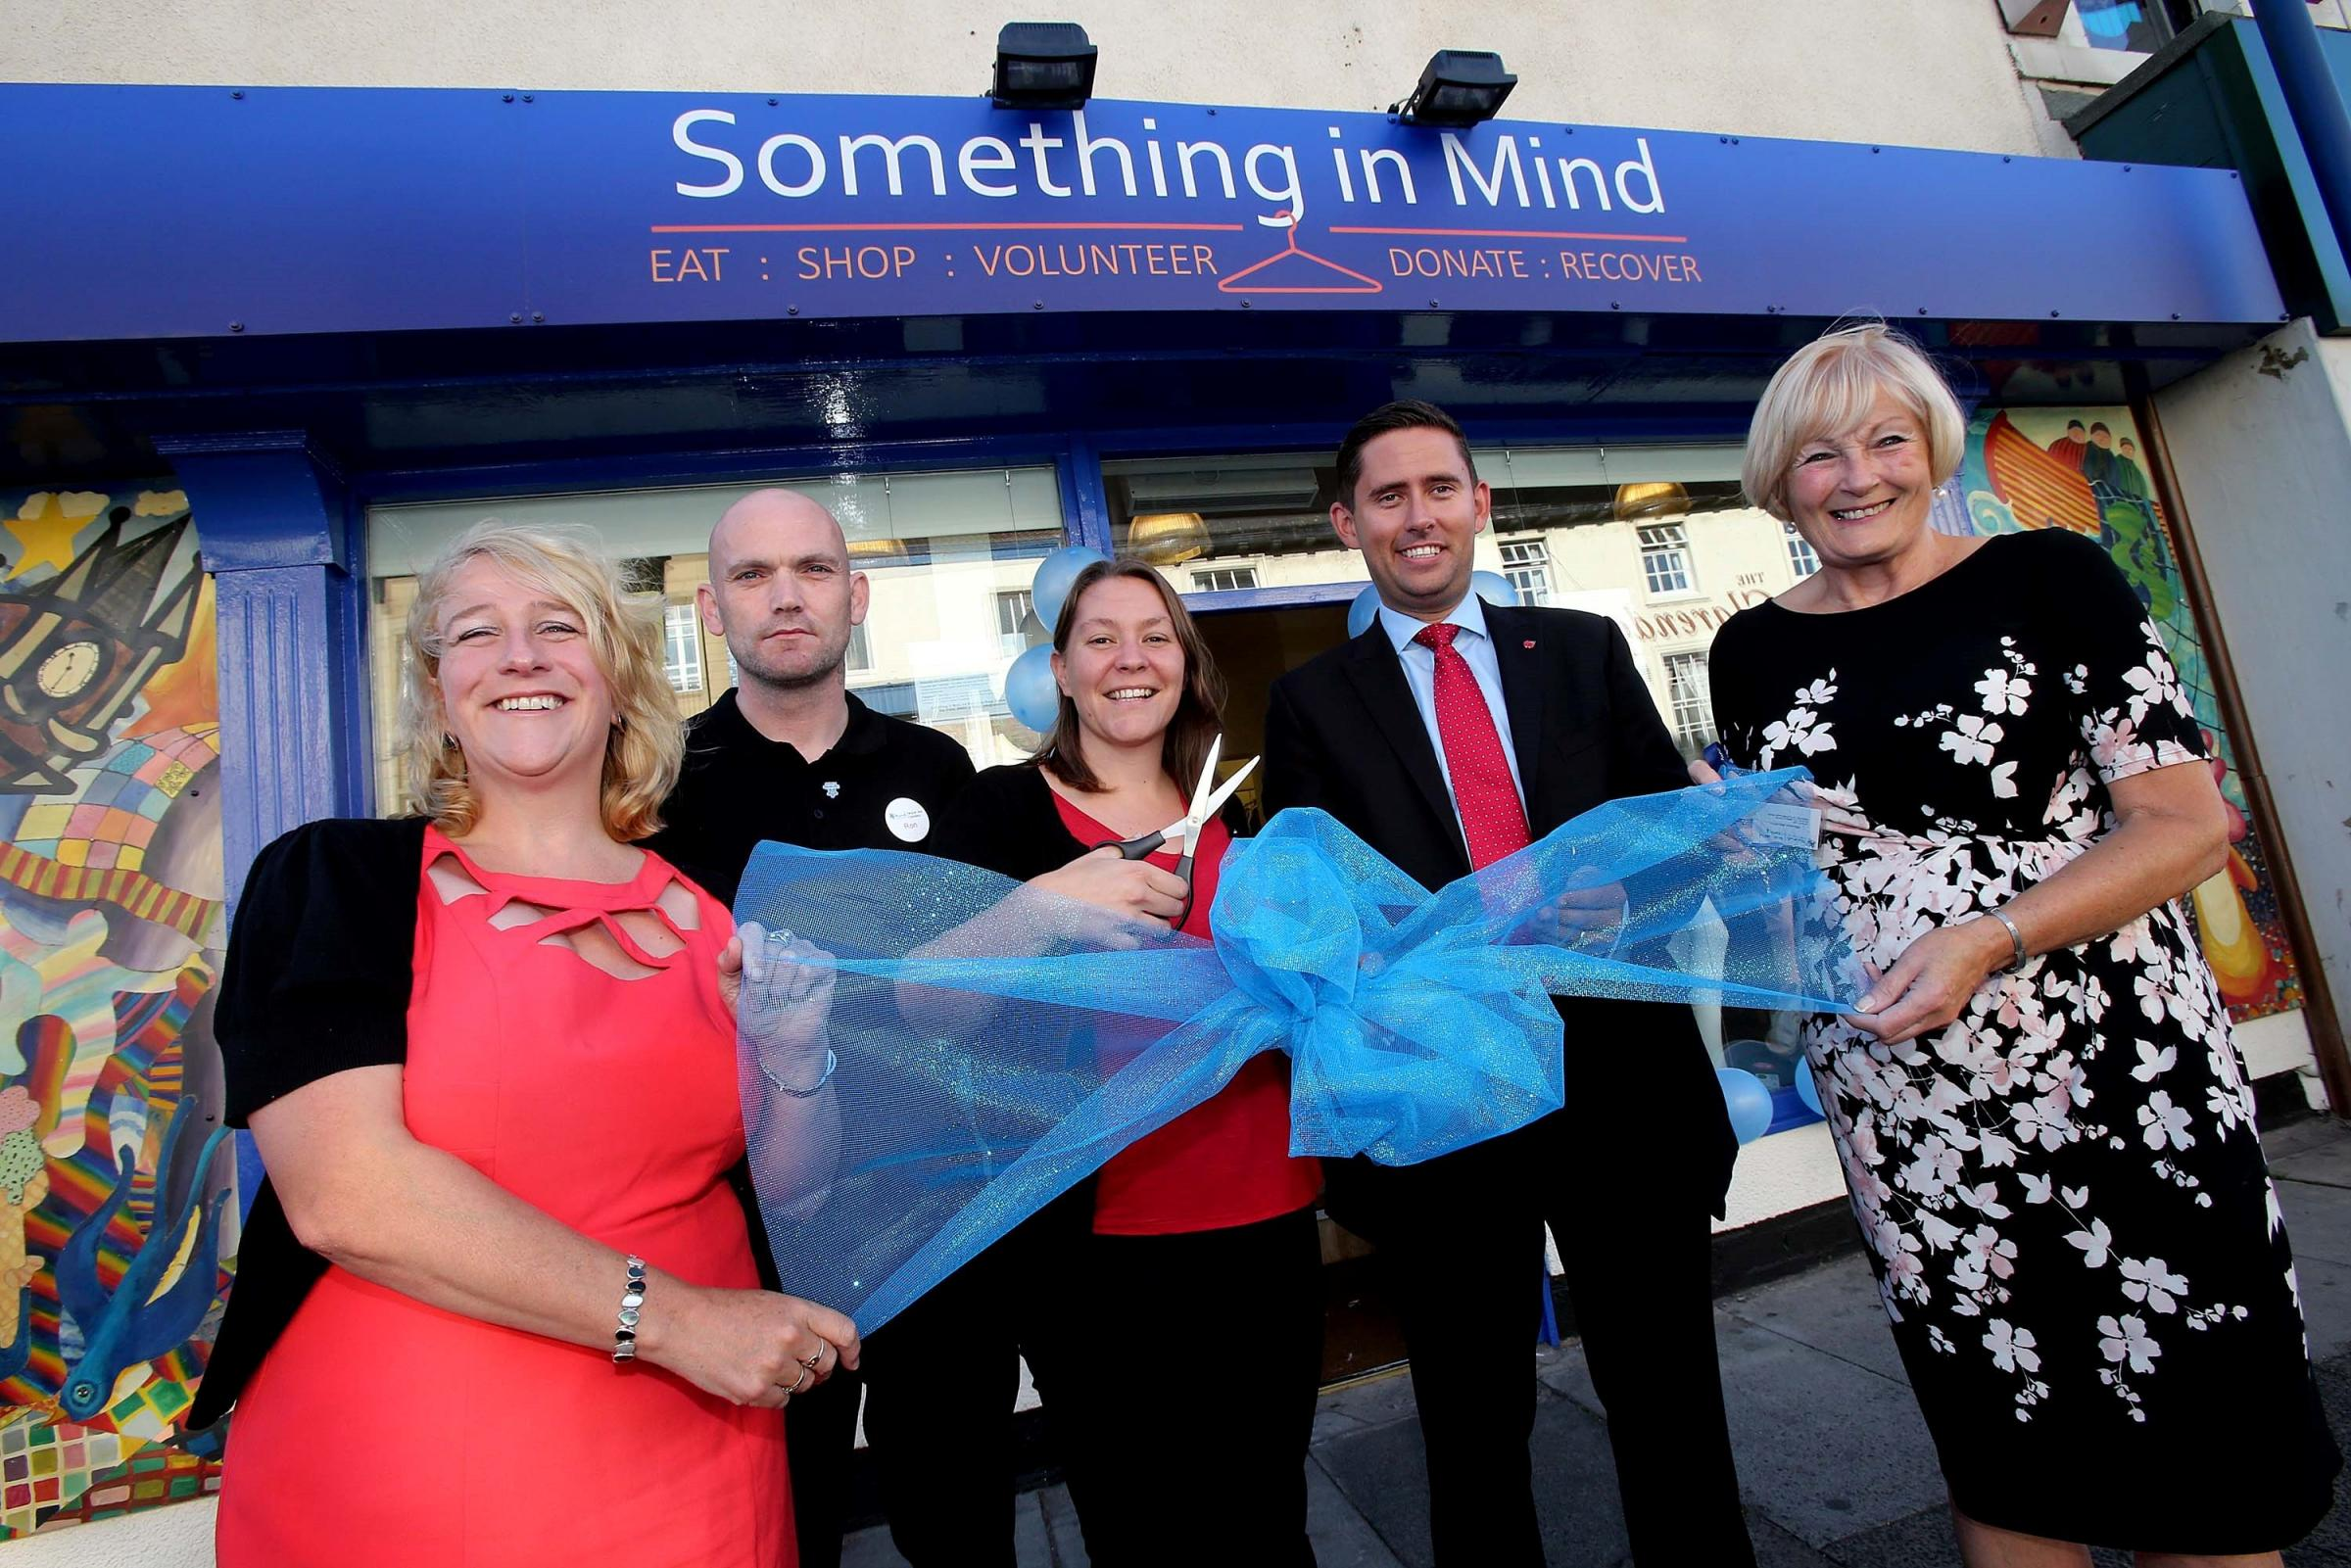 Charity opens new store with 'Something In Mind' for everyone